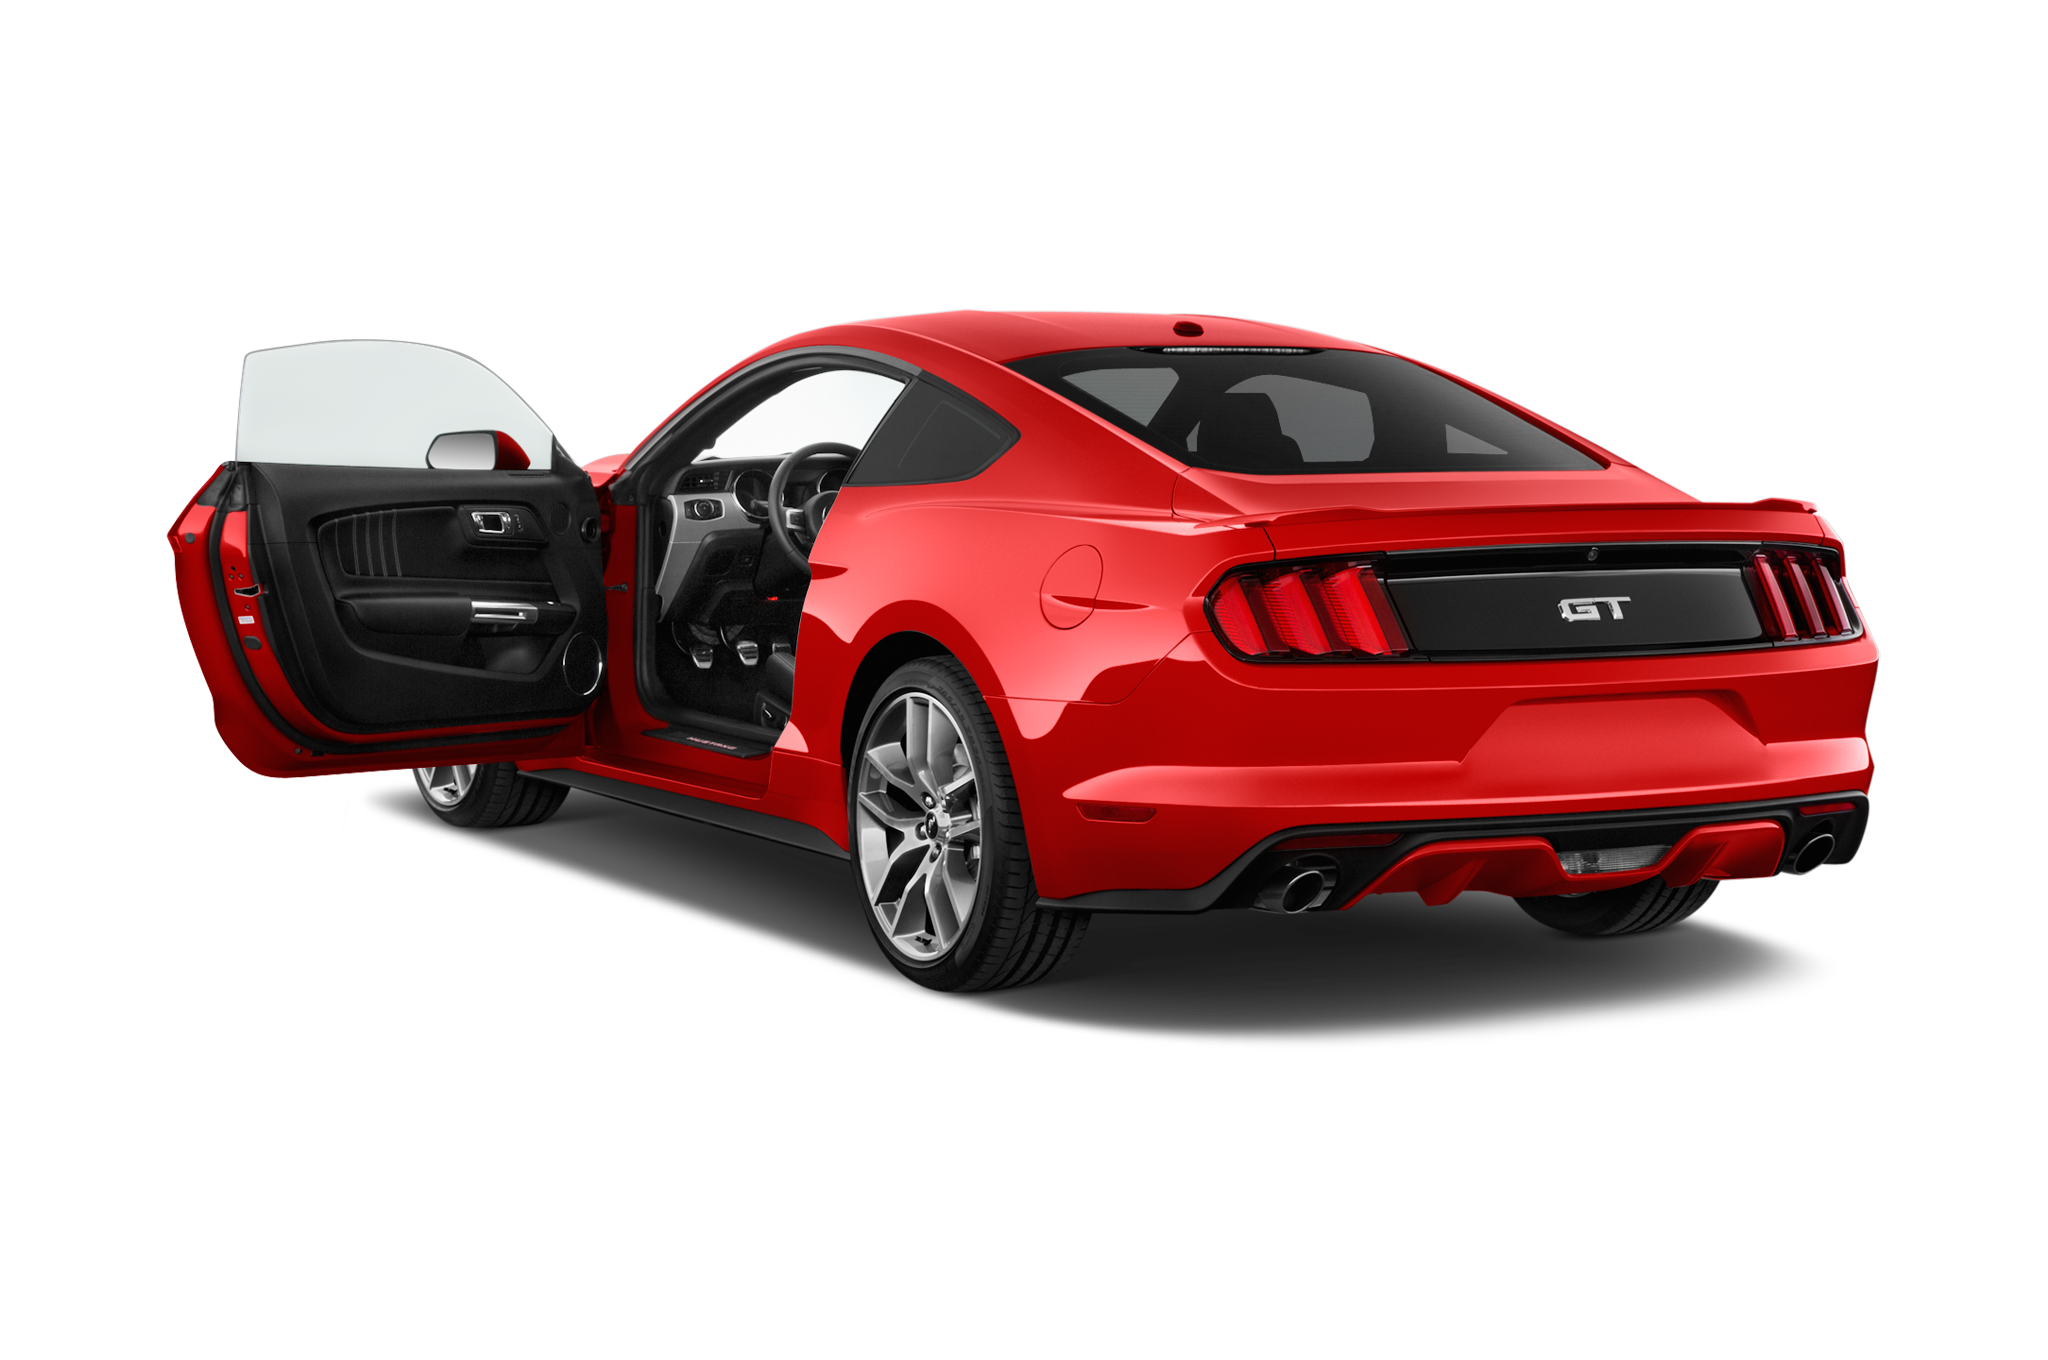 ford gt premium. Clipart cars 2015 mustang